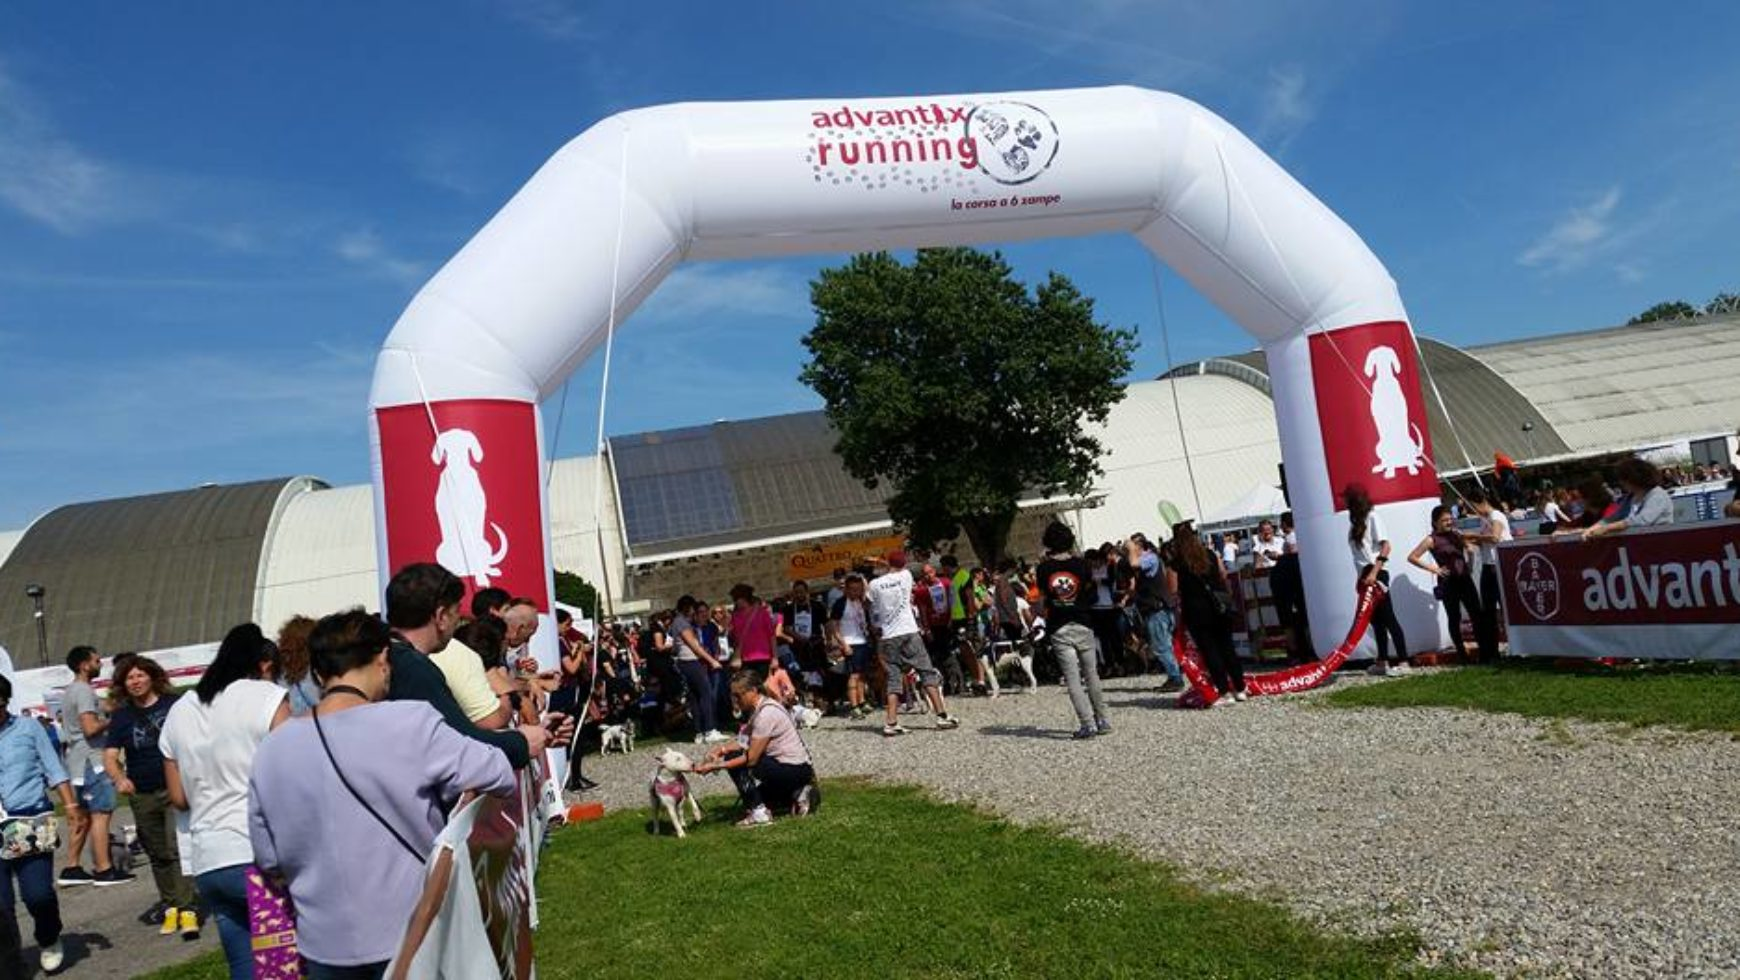 Palla a Milano alla Advantix Running: Quattrozampe in fiera 2016, due video